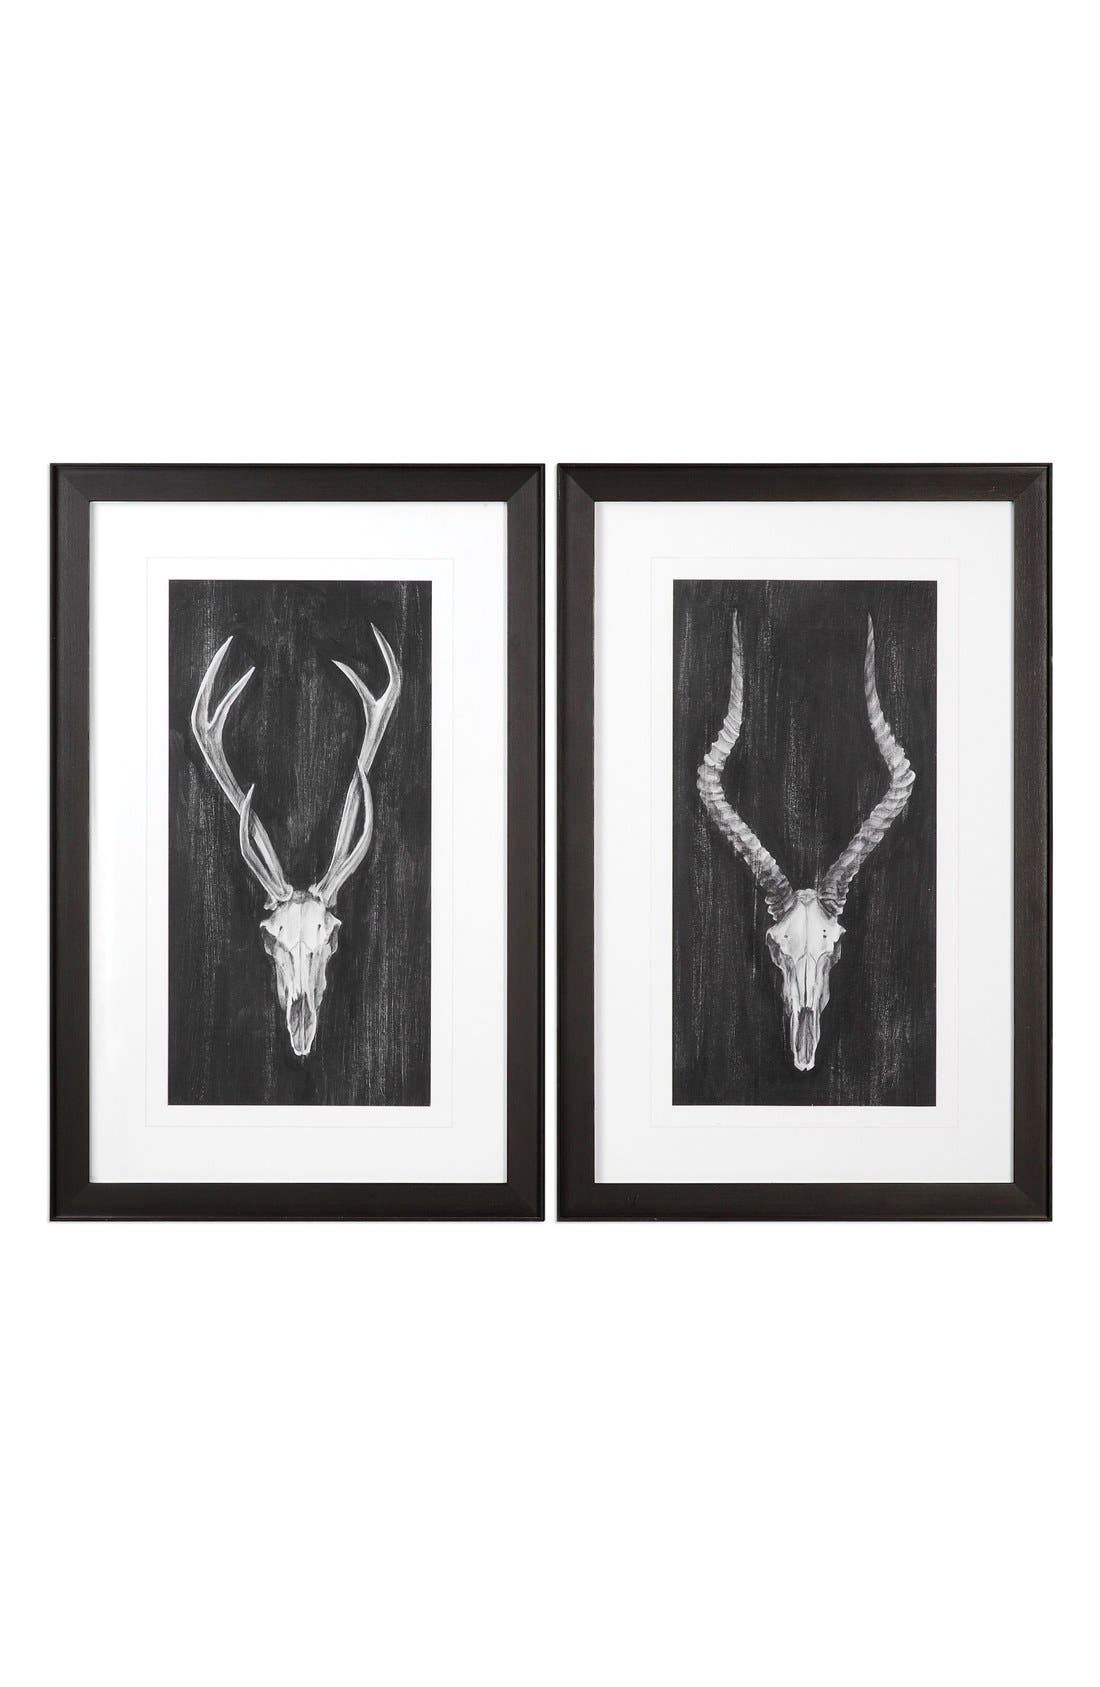 Alternate Image 1 Selected - Uttermost 'Rustic Mounts' Wall Art (Set of 2)